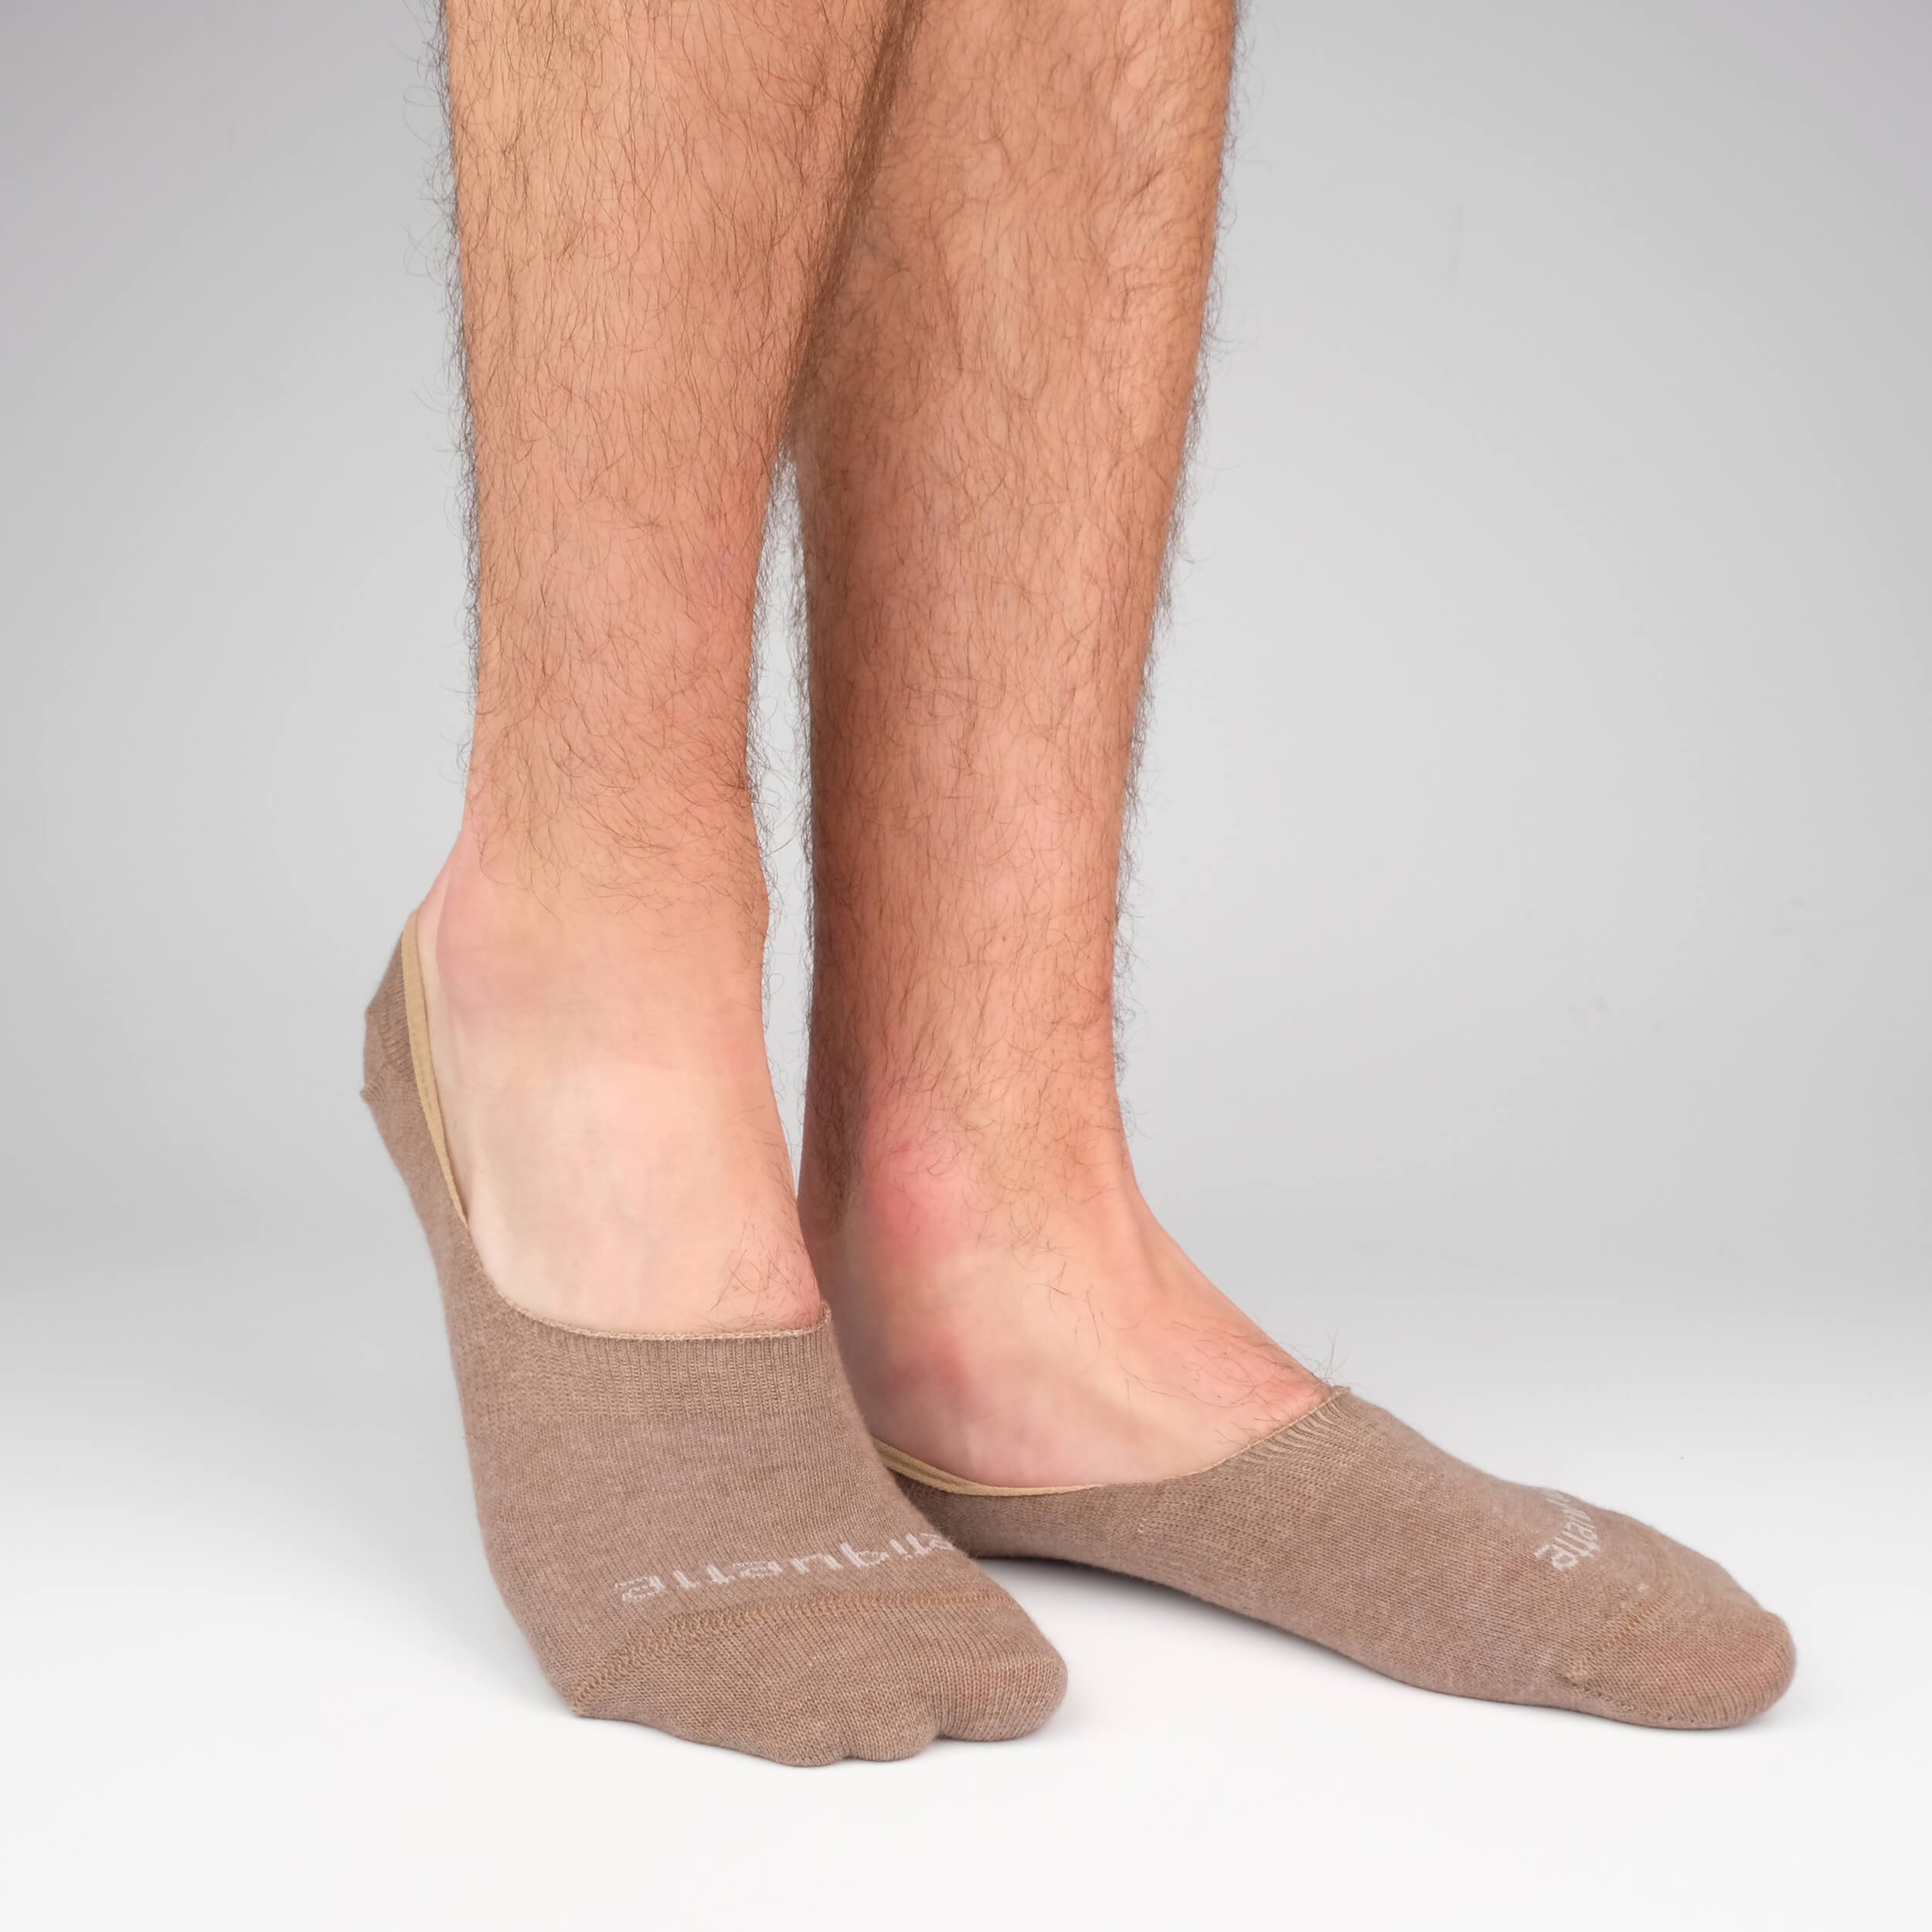 Mens Socks - Men's No Show Socks - Brown⎪Etiquette Clothiers